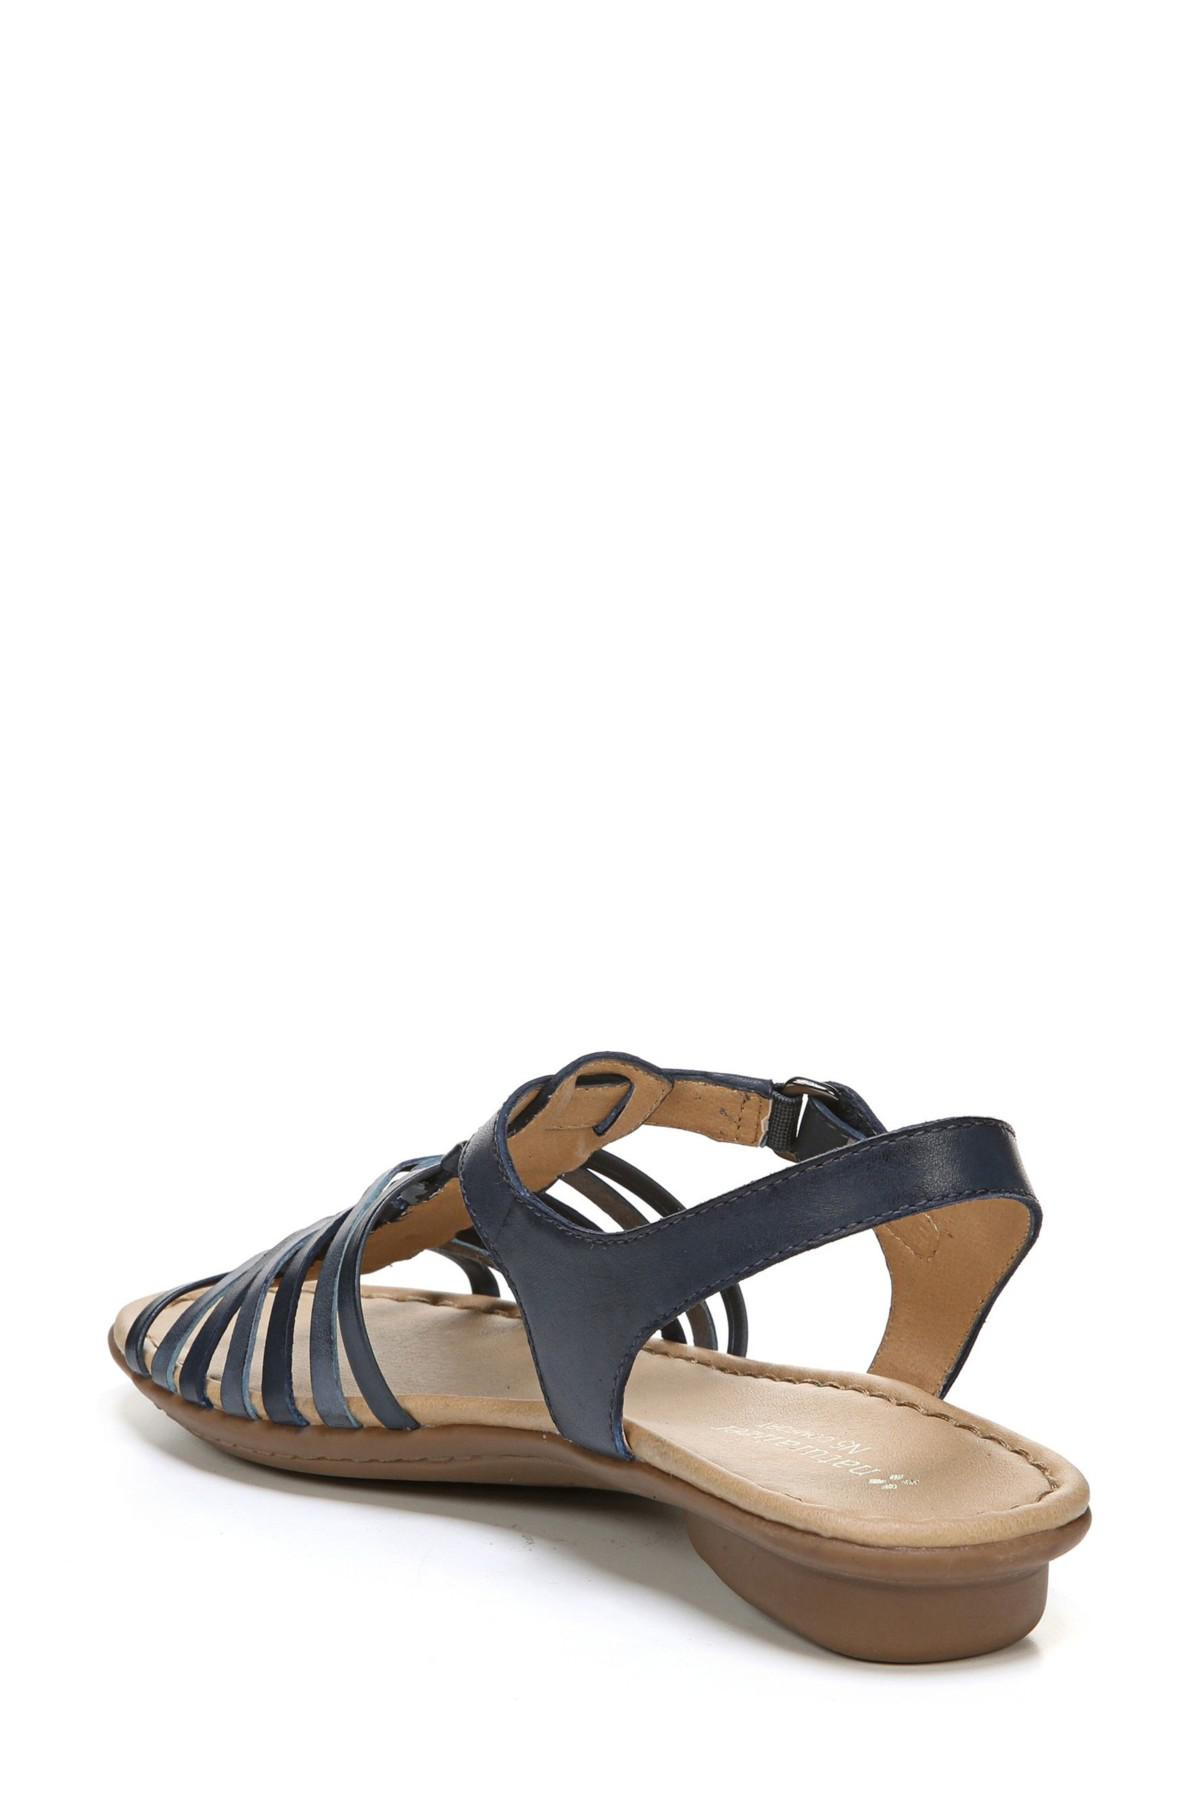 Naturalizer Wade Strappy Sandal In Blue Lyst